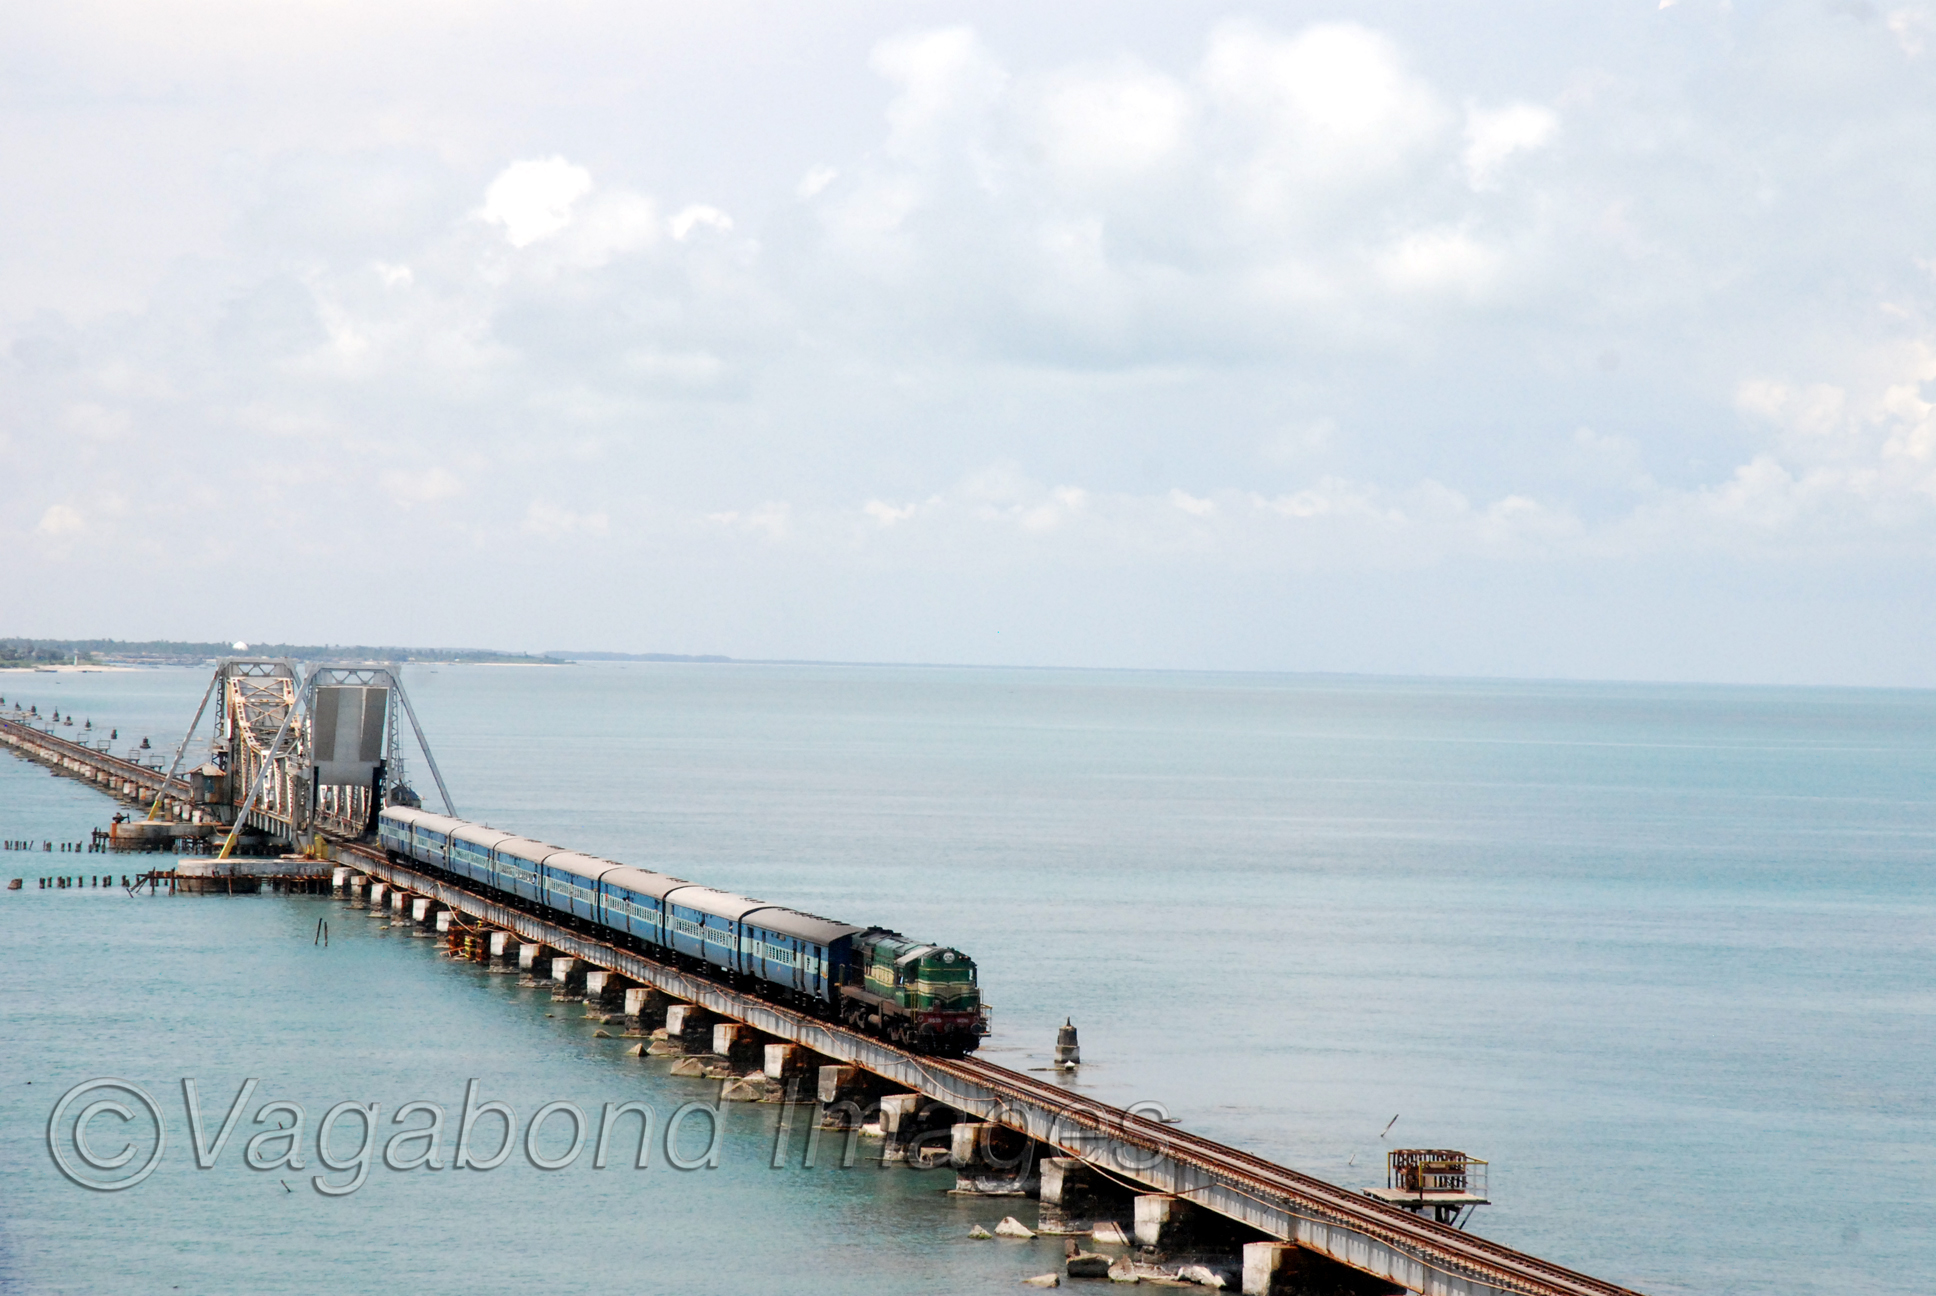 Train from Madurai crossing the bridge to enter the Pamban island